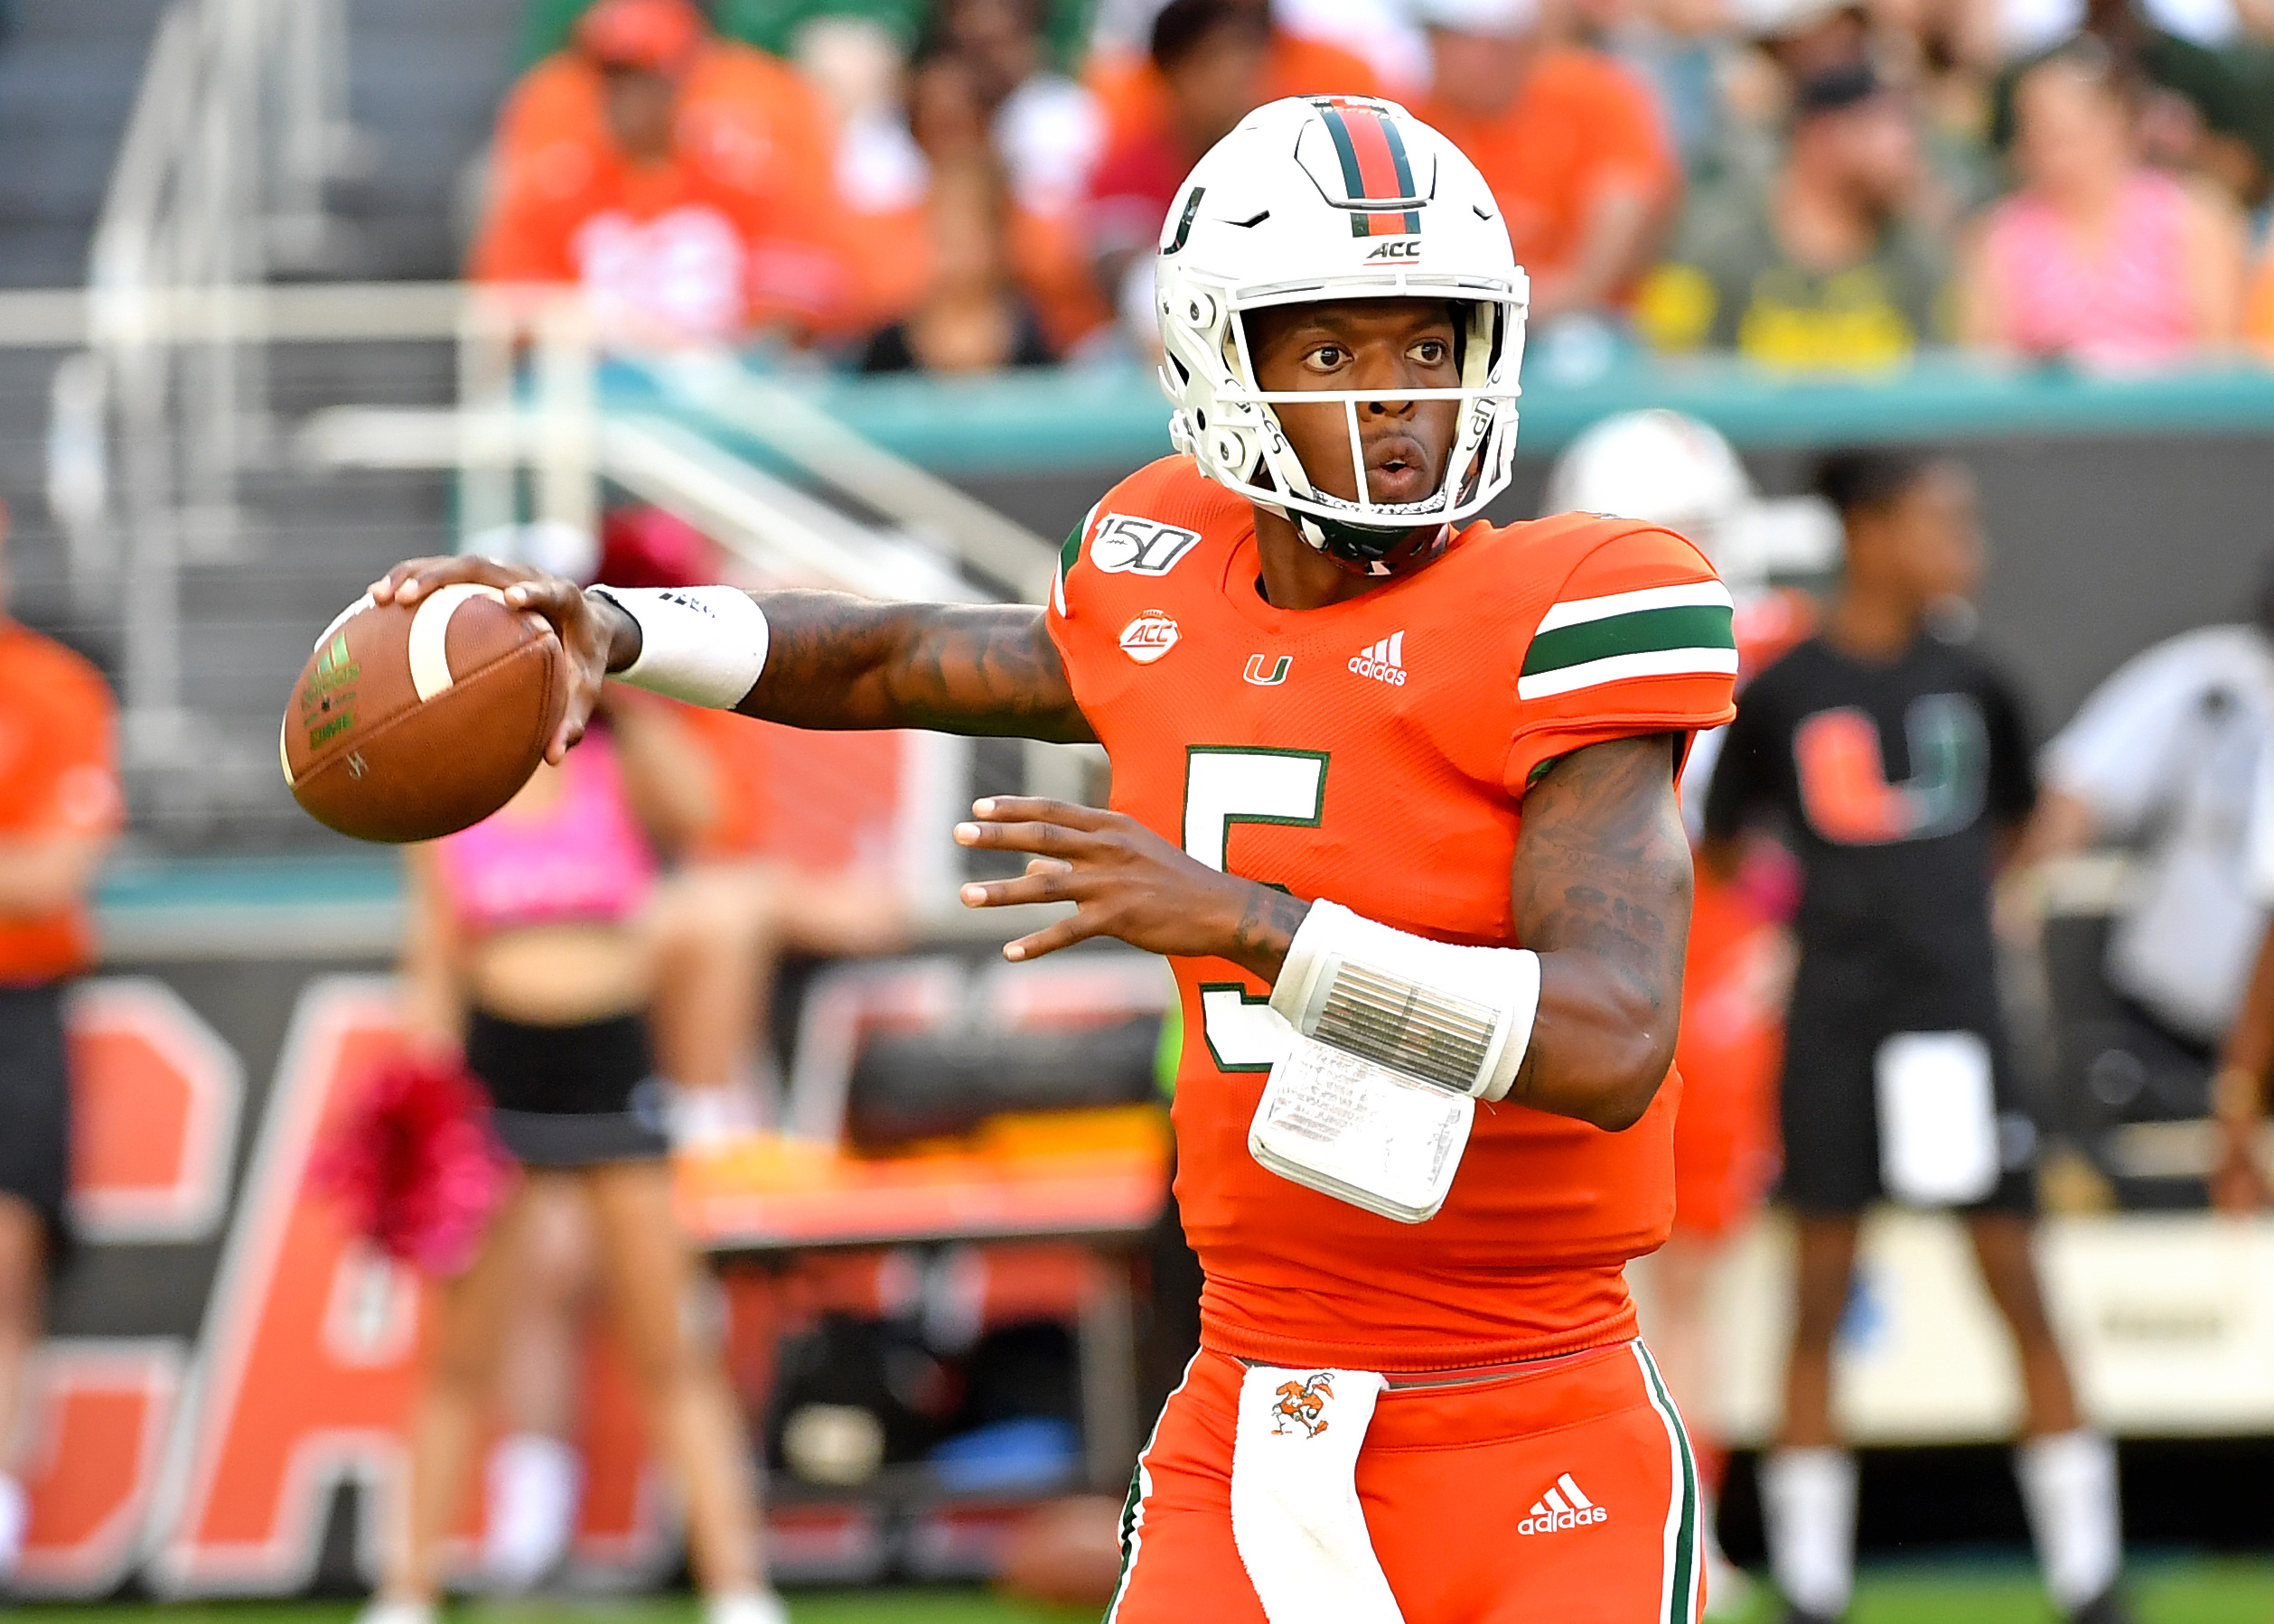 NCAA Football: Virginia Tech at Miami